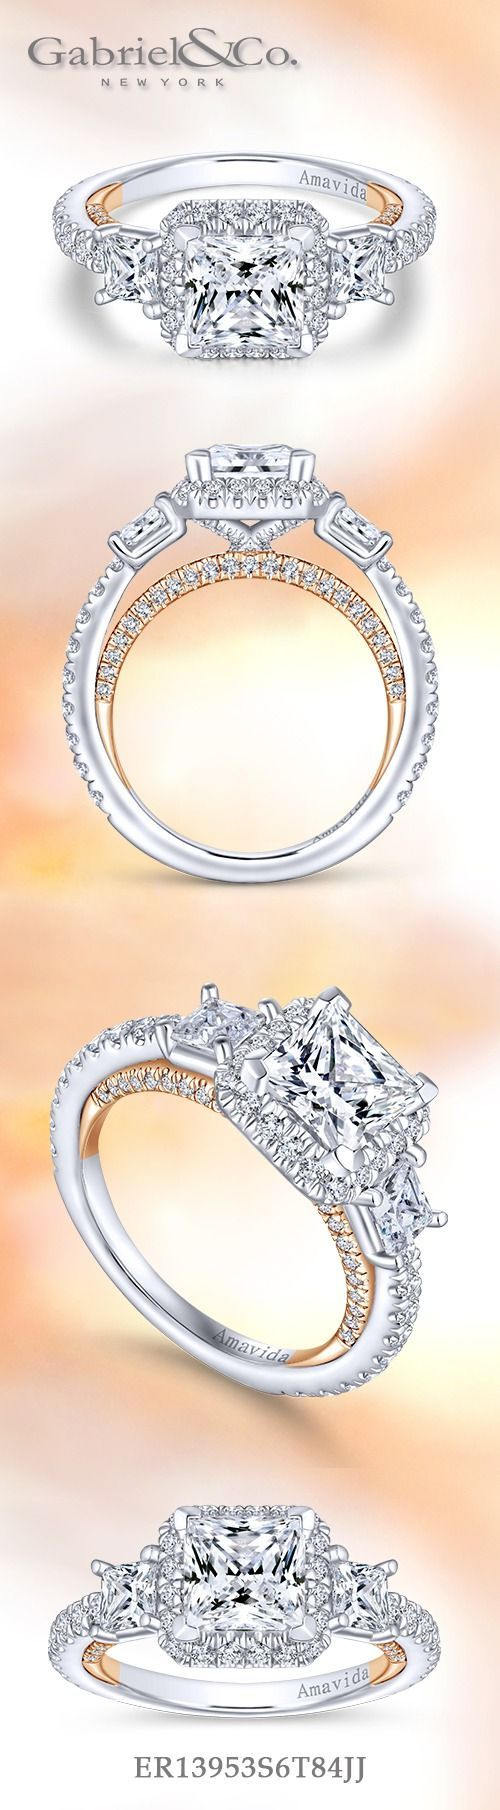 Gabriel NY- Voted  #1  Most Preferred Fine Jewelry and Bridal Brand. 18k White / Rose Gold Princess Cut 3 Stones Engagement Ring